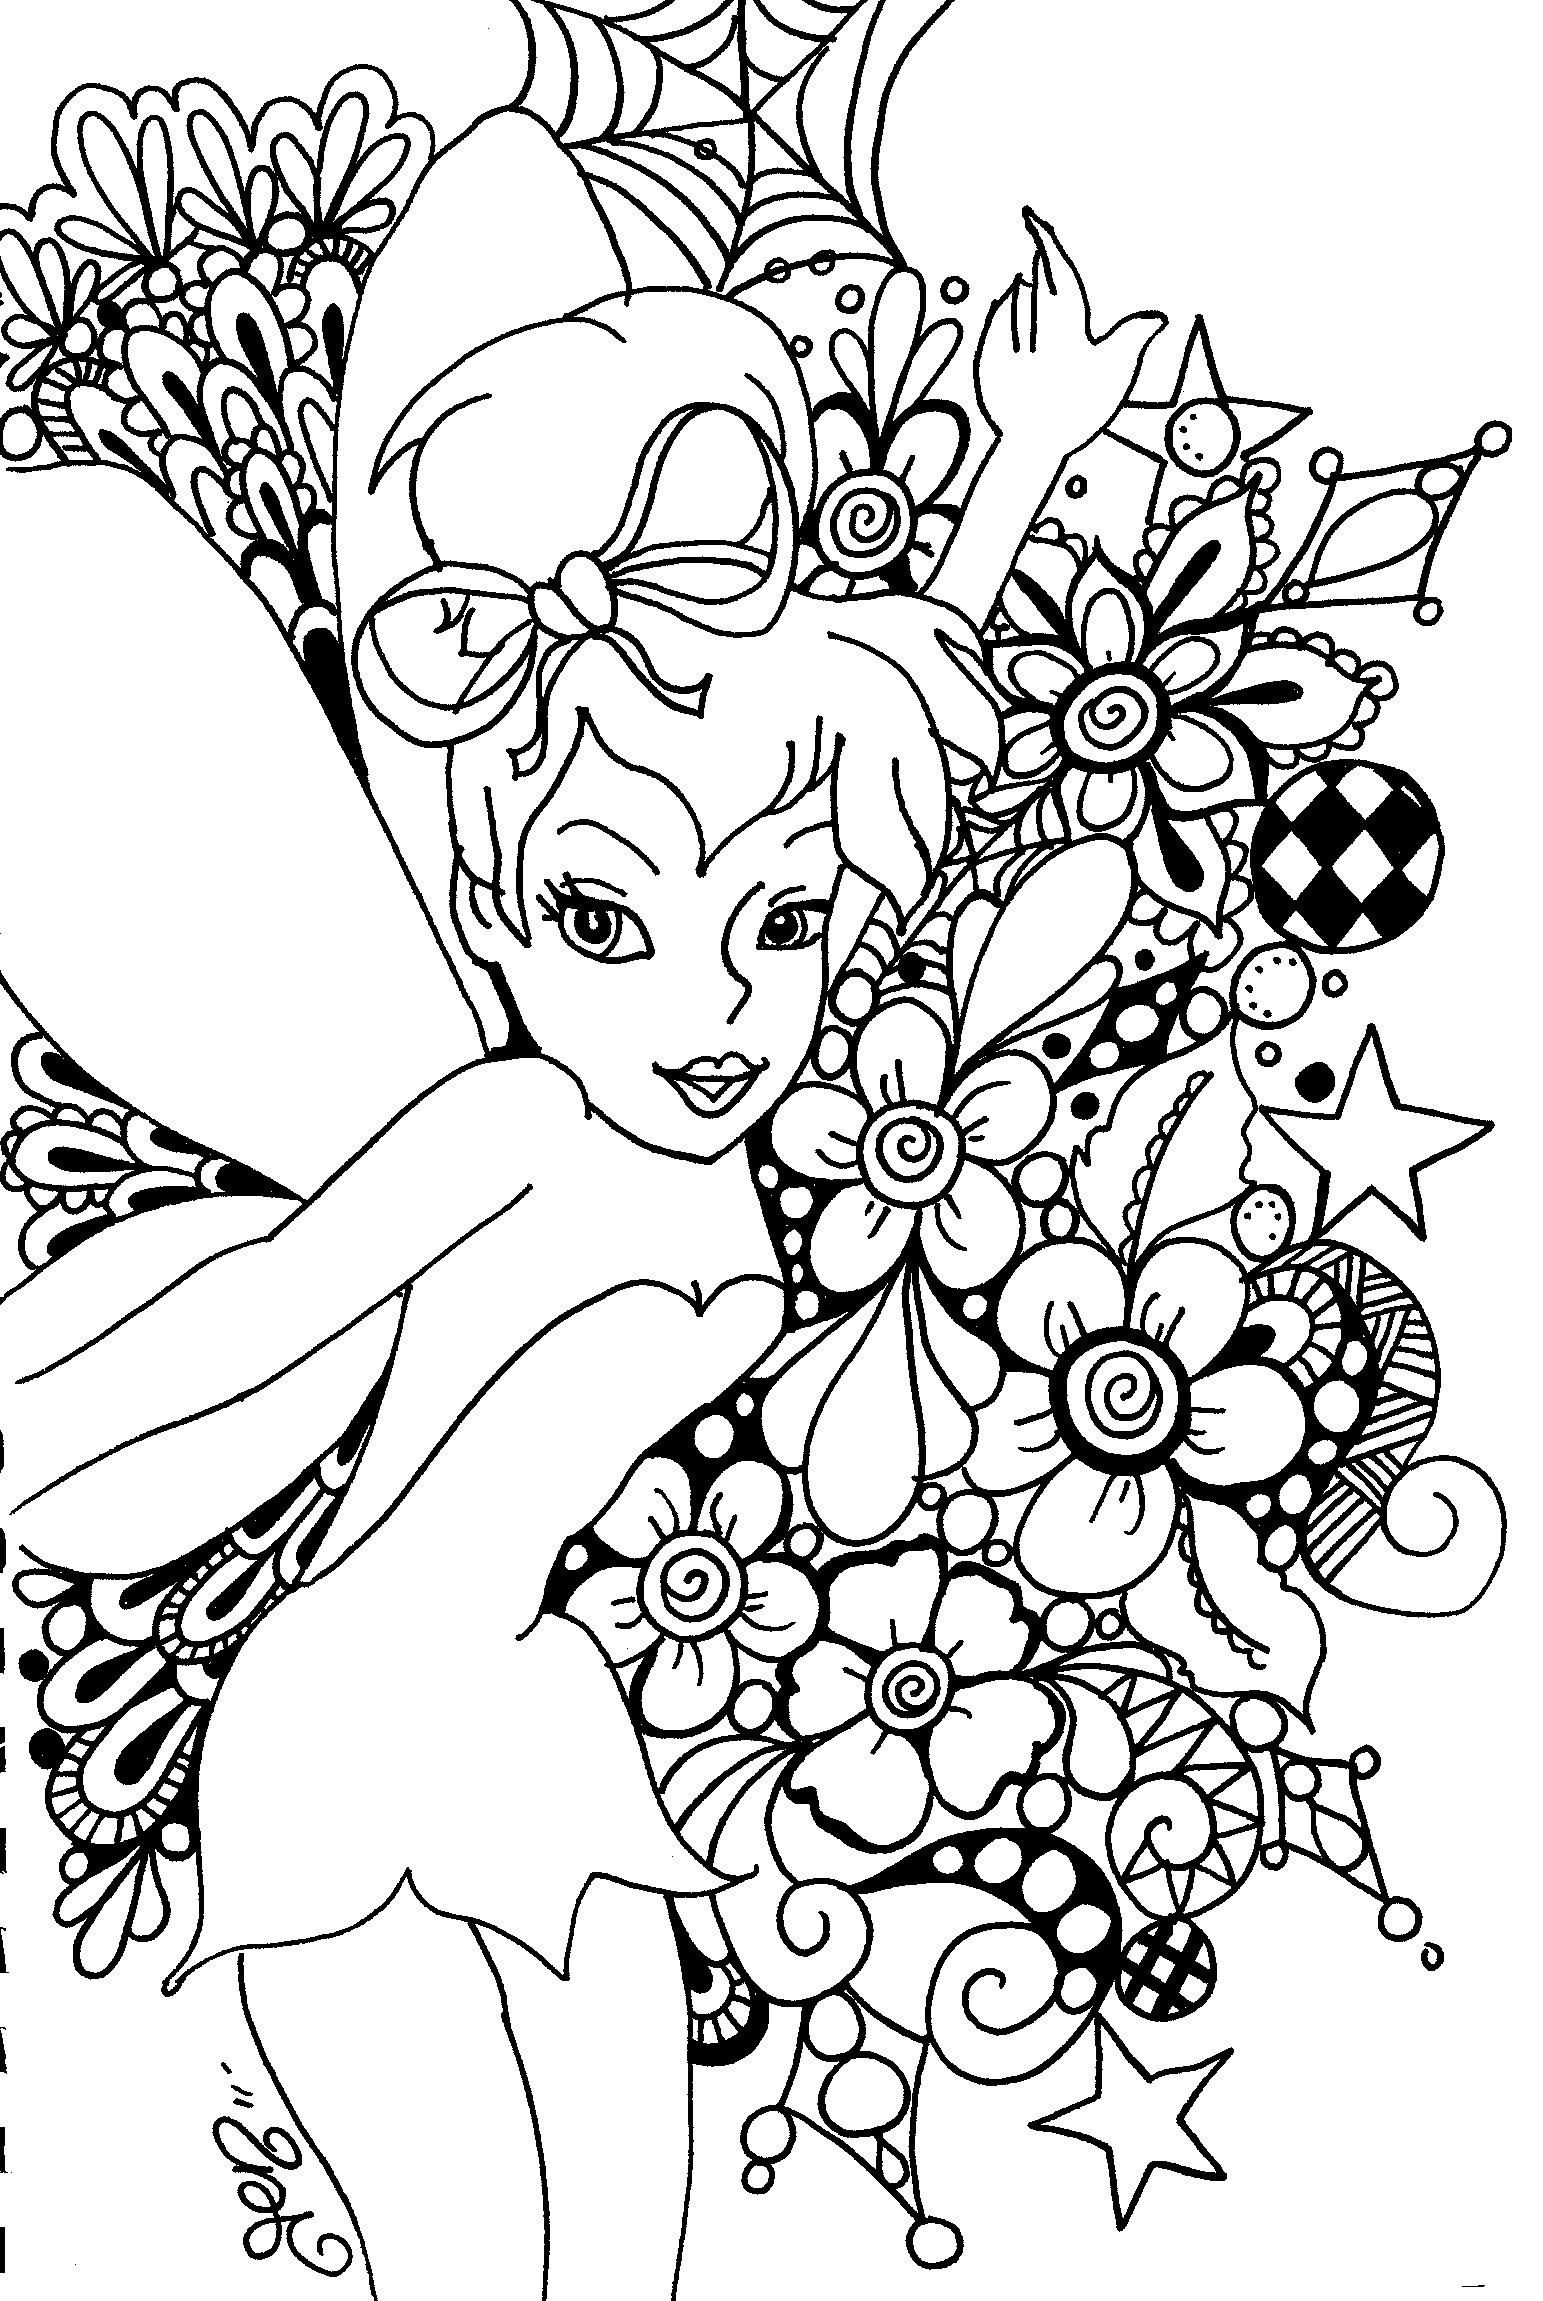 1543x2301 Tinkerbell Coloring Page Fresh Free Printable Adorable Tinker Bell